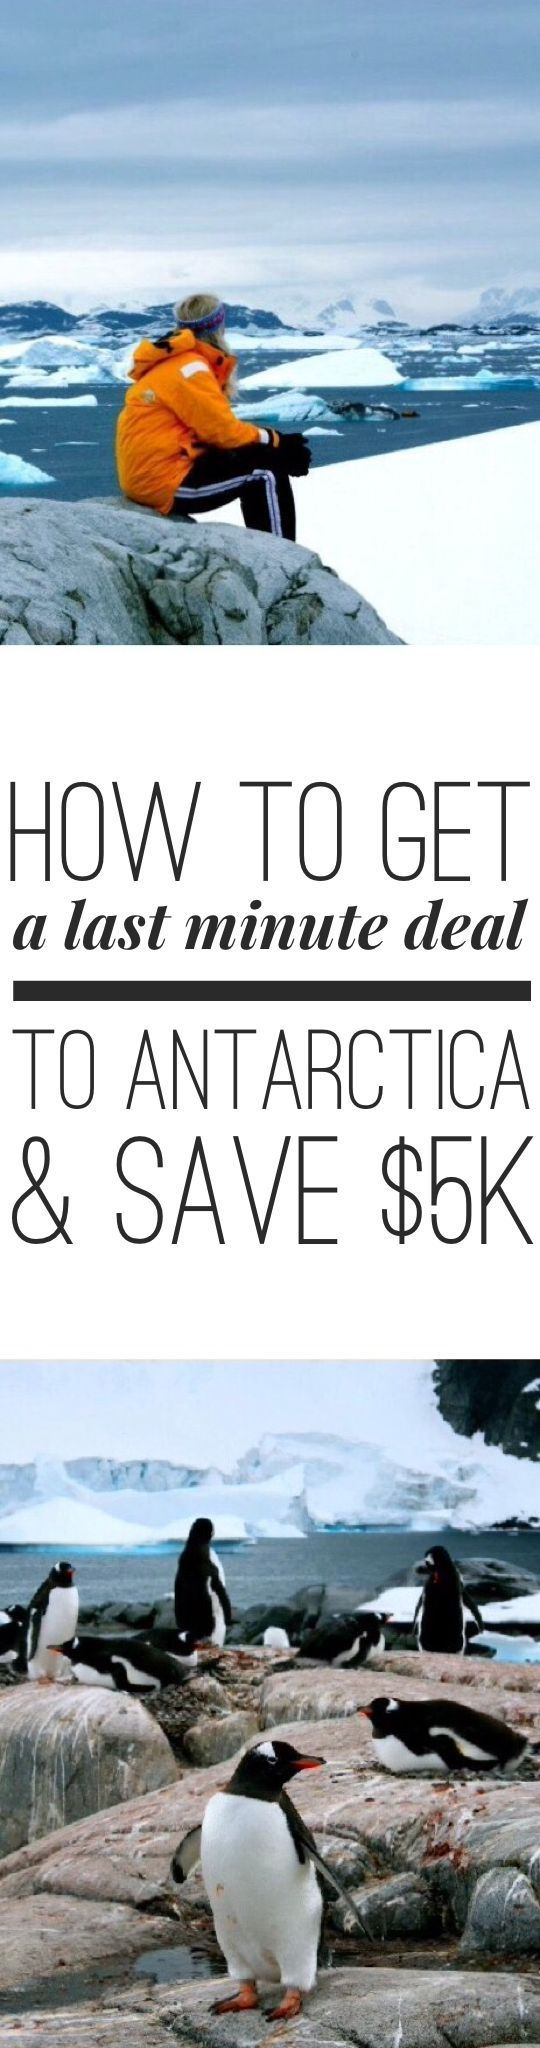 Want to visit Antarctica and save over $5000? Read my guide on how to score a last minute deal!!